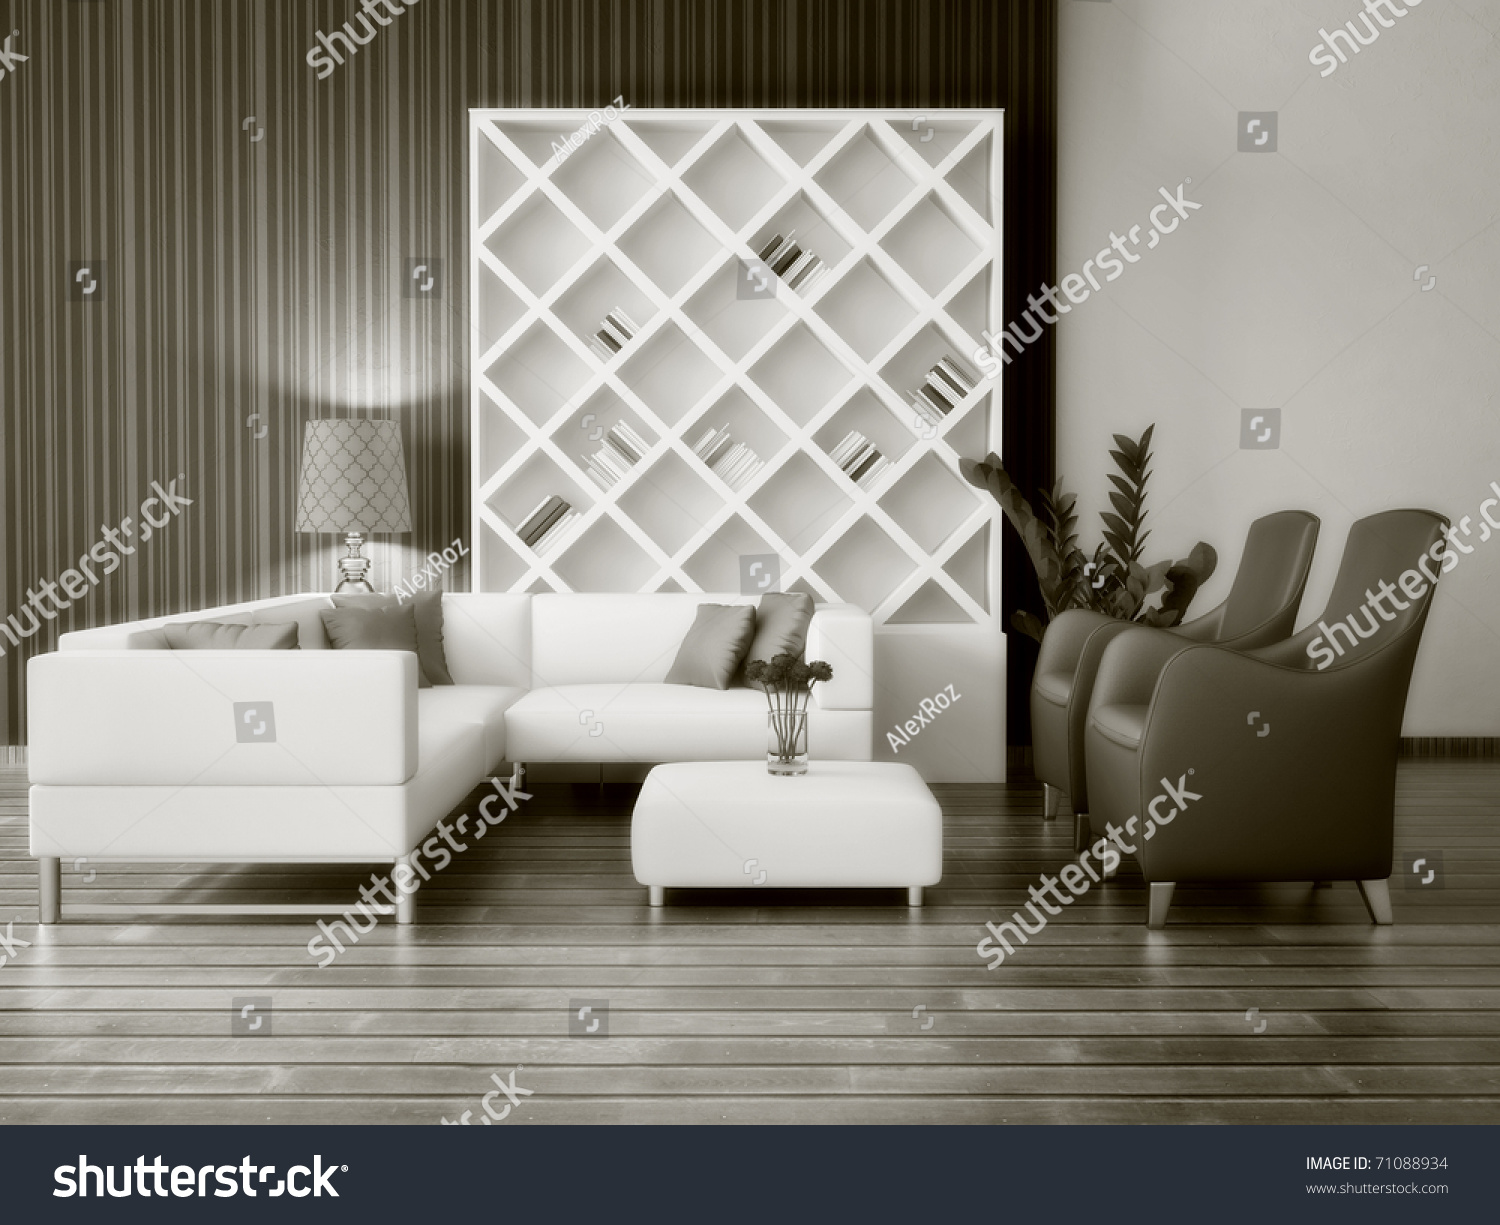 Modern interior room with nice furniture inside stock photo 71088934 shutterstock - Nice interior pic ...